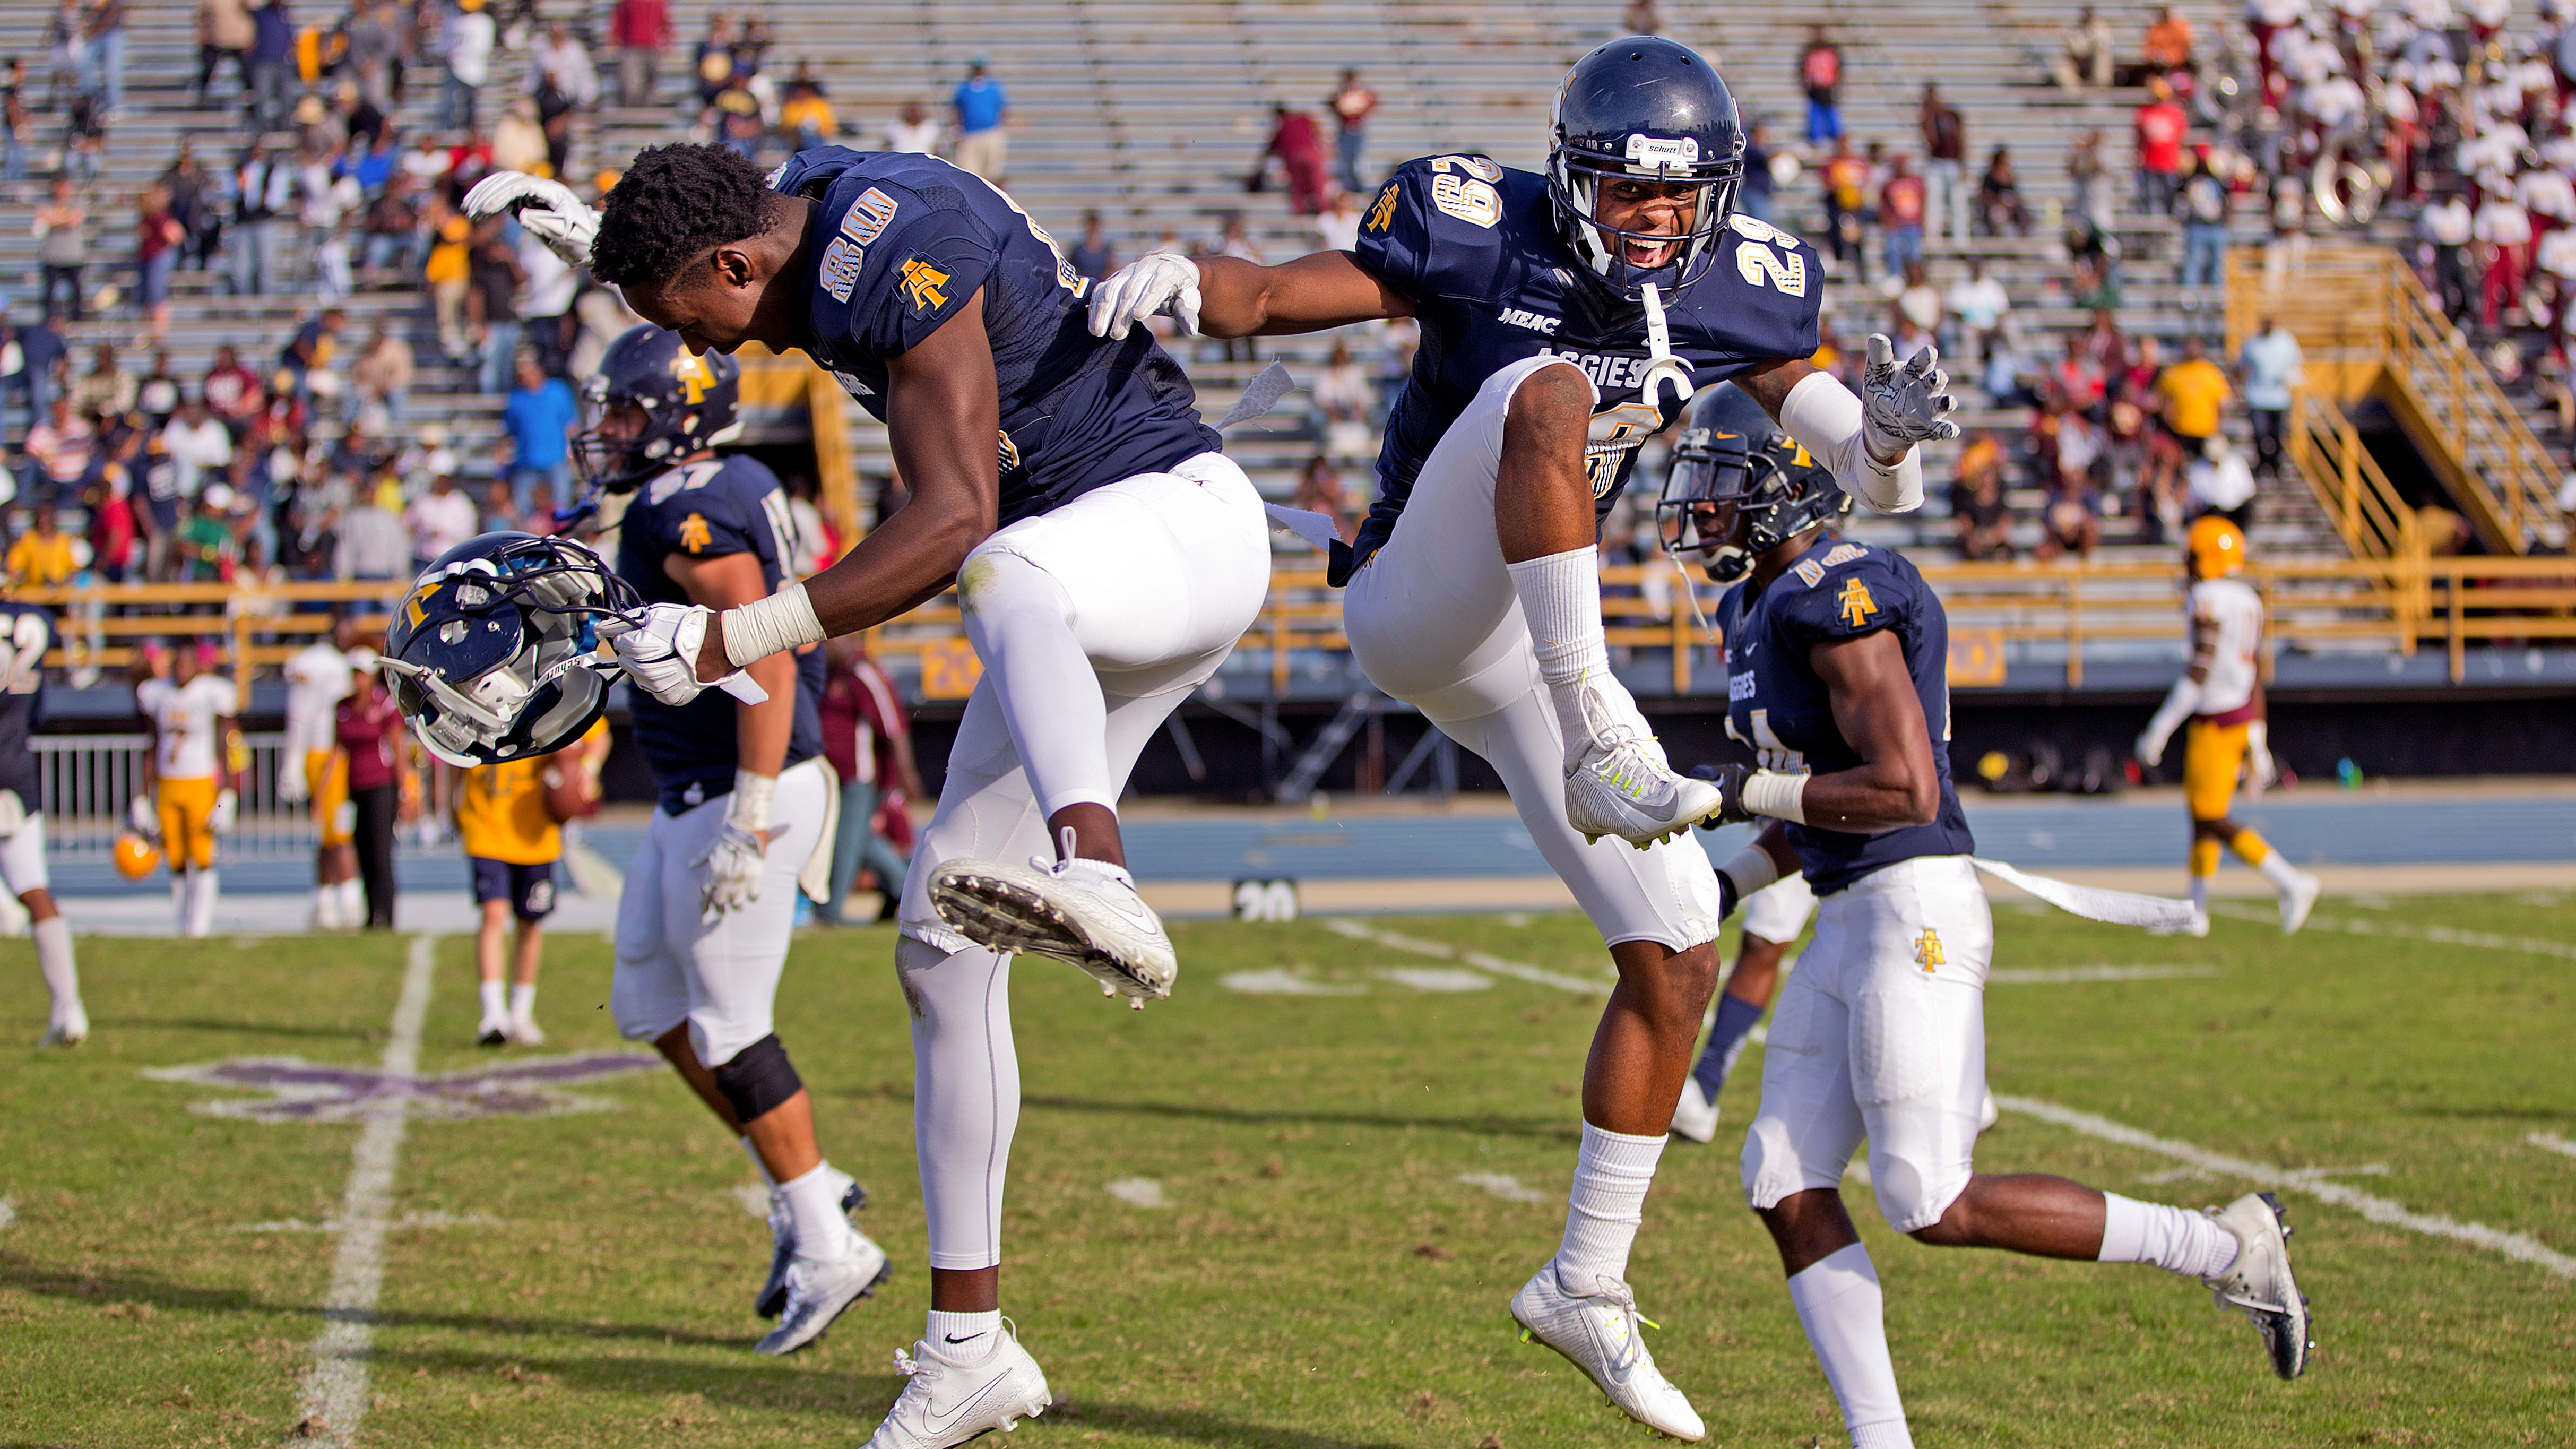 N.C. A&T 24, Bethune-Cookman 20